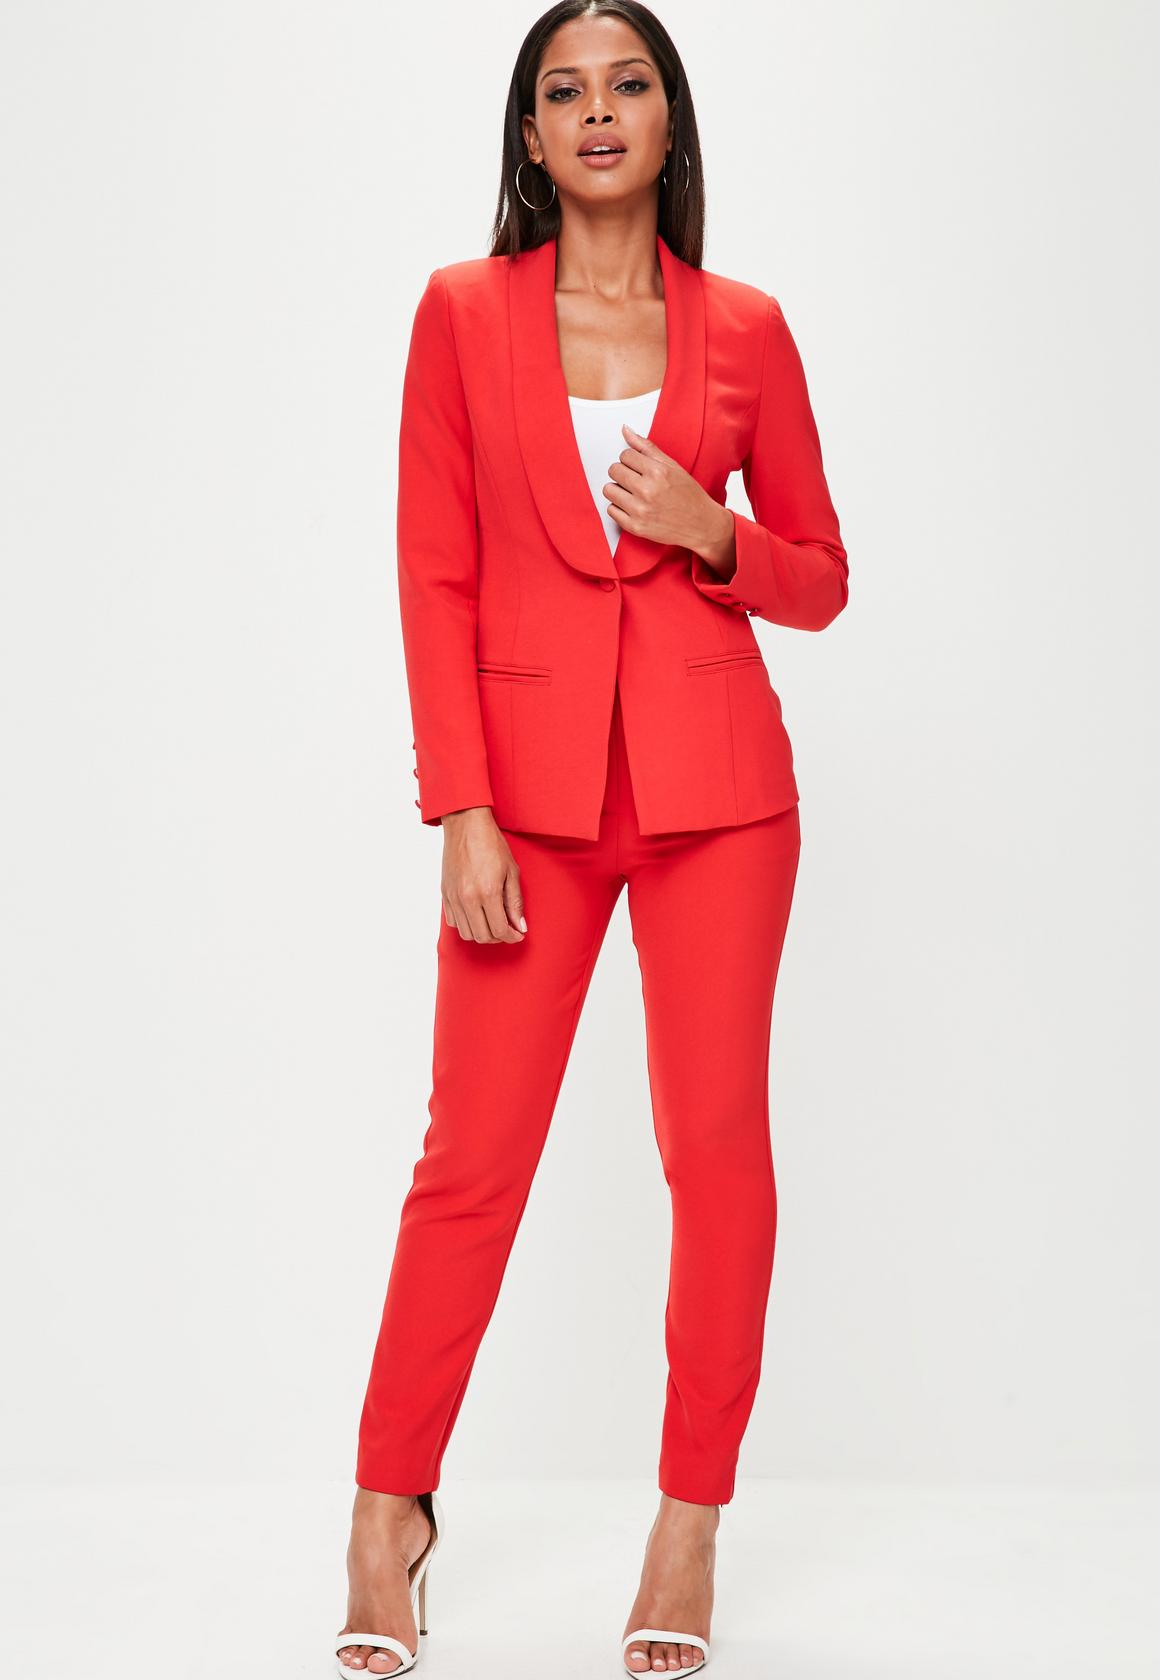 Missguided Red Tuxedo Jacket, £35; Red Skinny Cigarette Trousers, £15